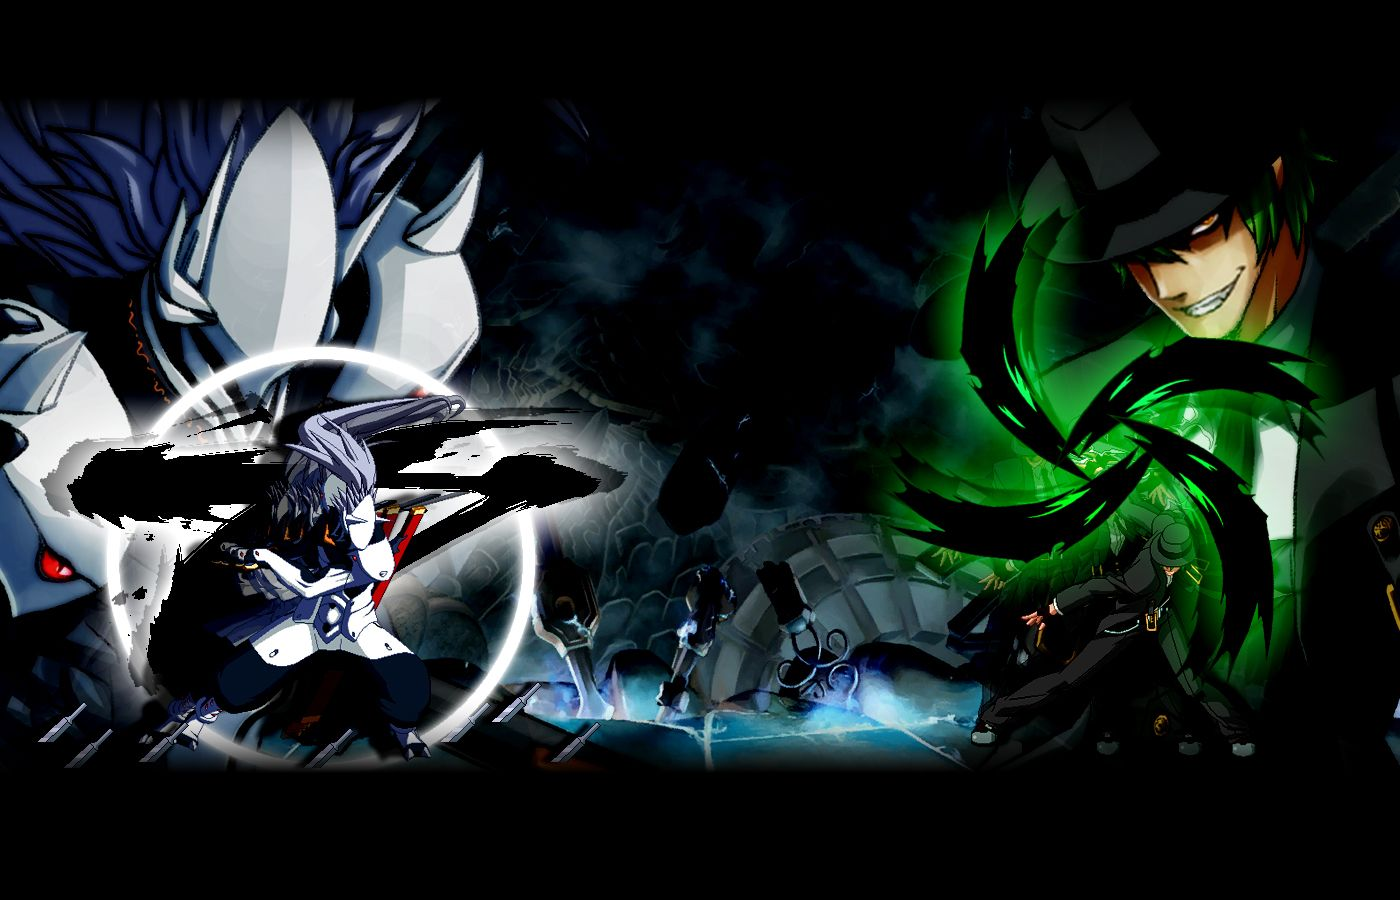 Blazblue Wallpaper Background Images Wallpaper Wallpaper